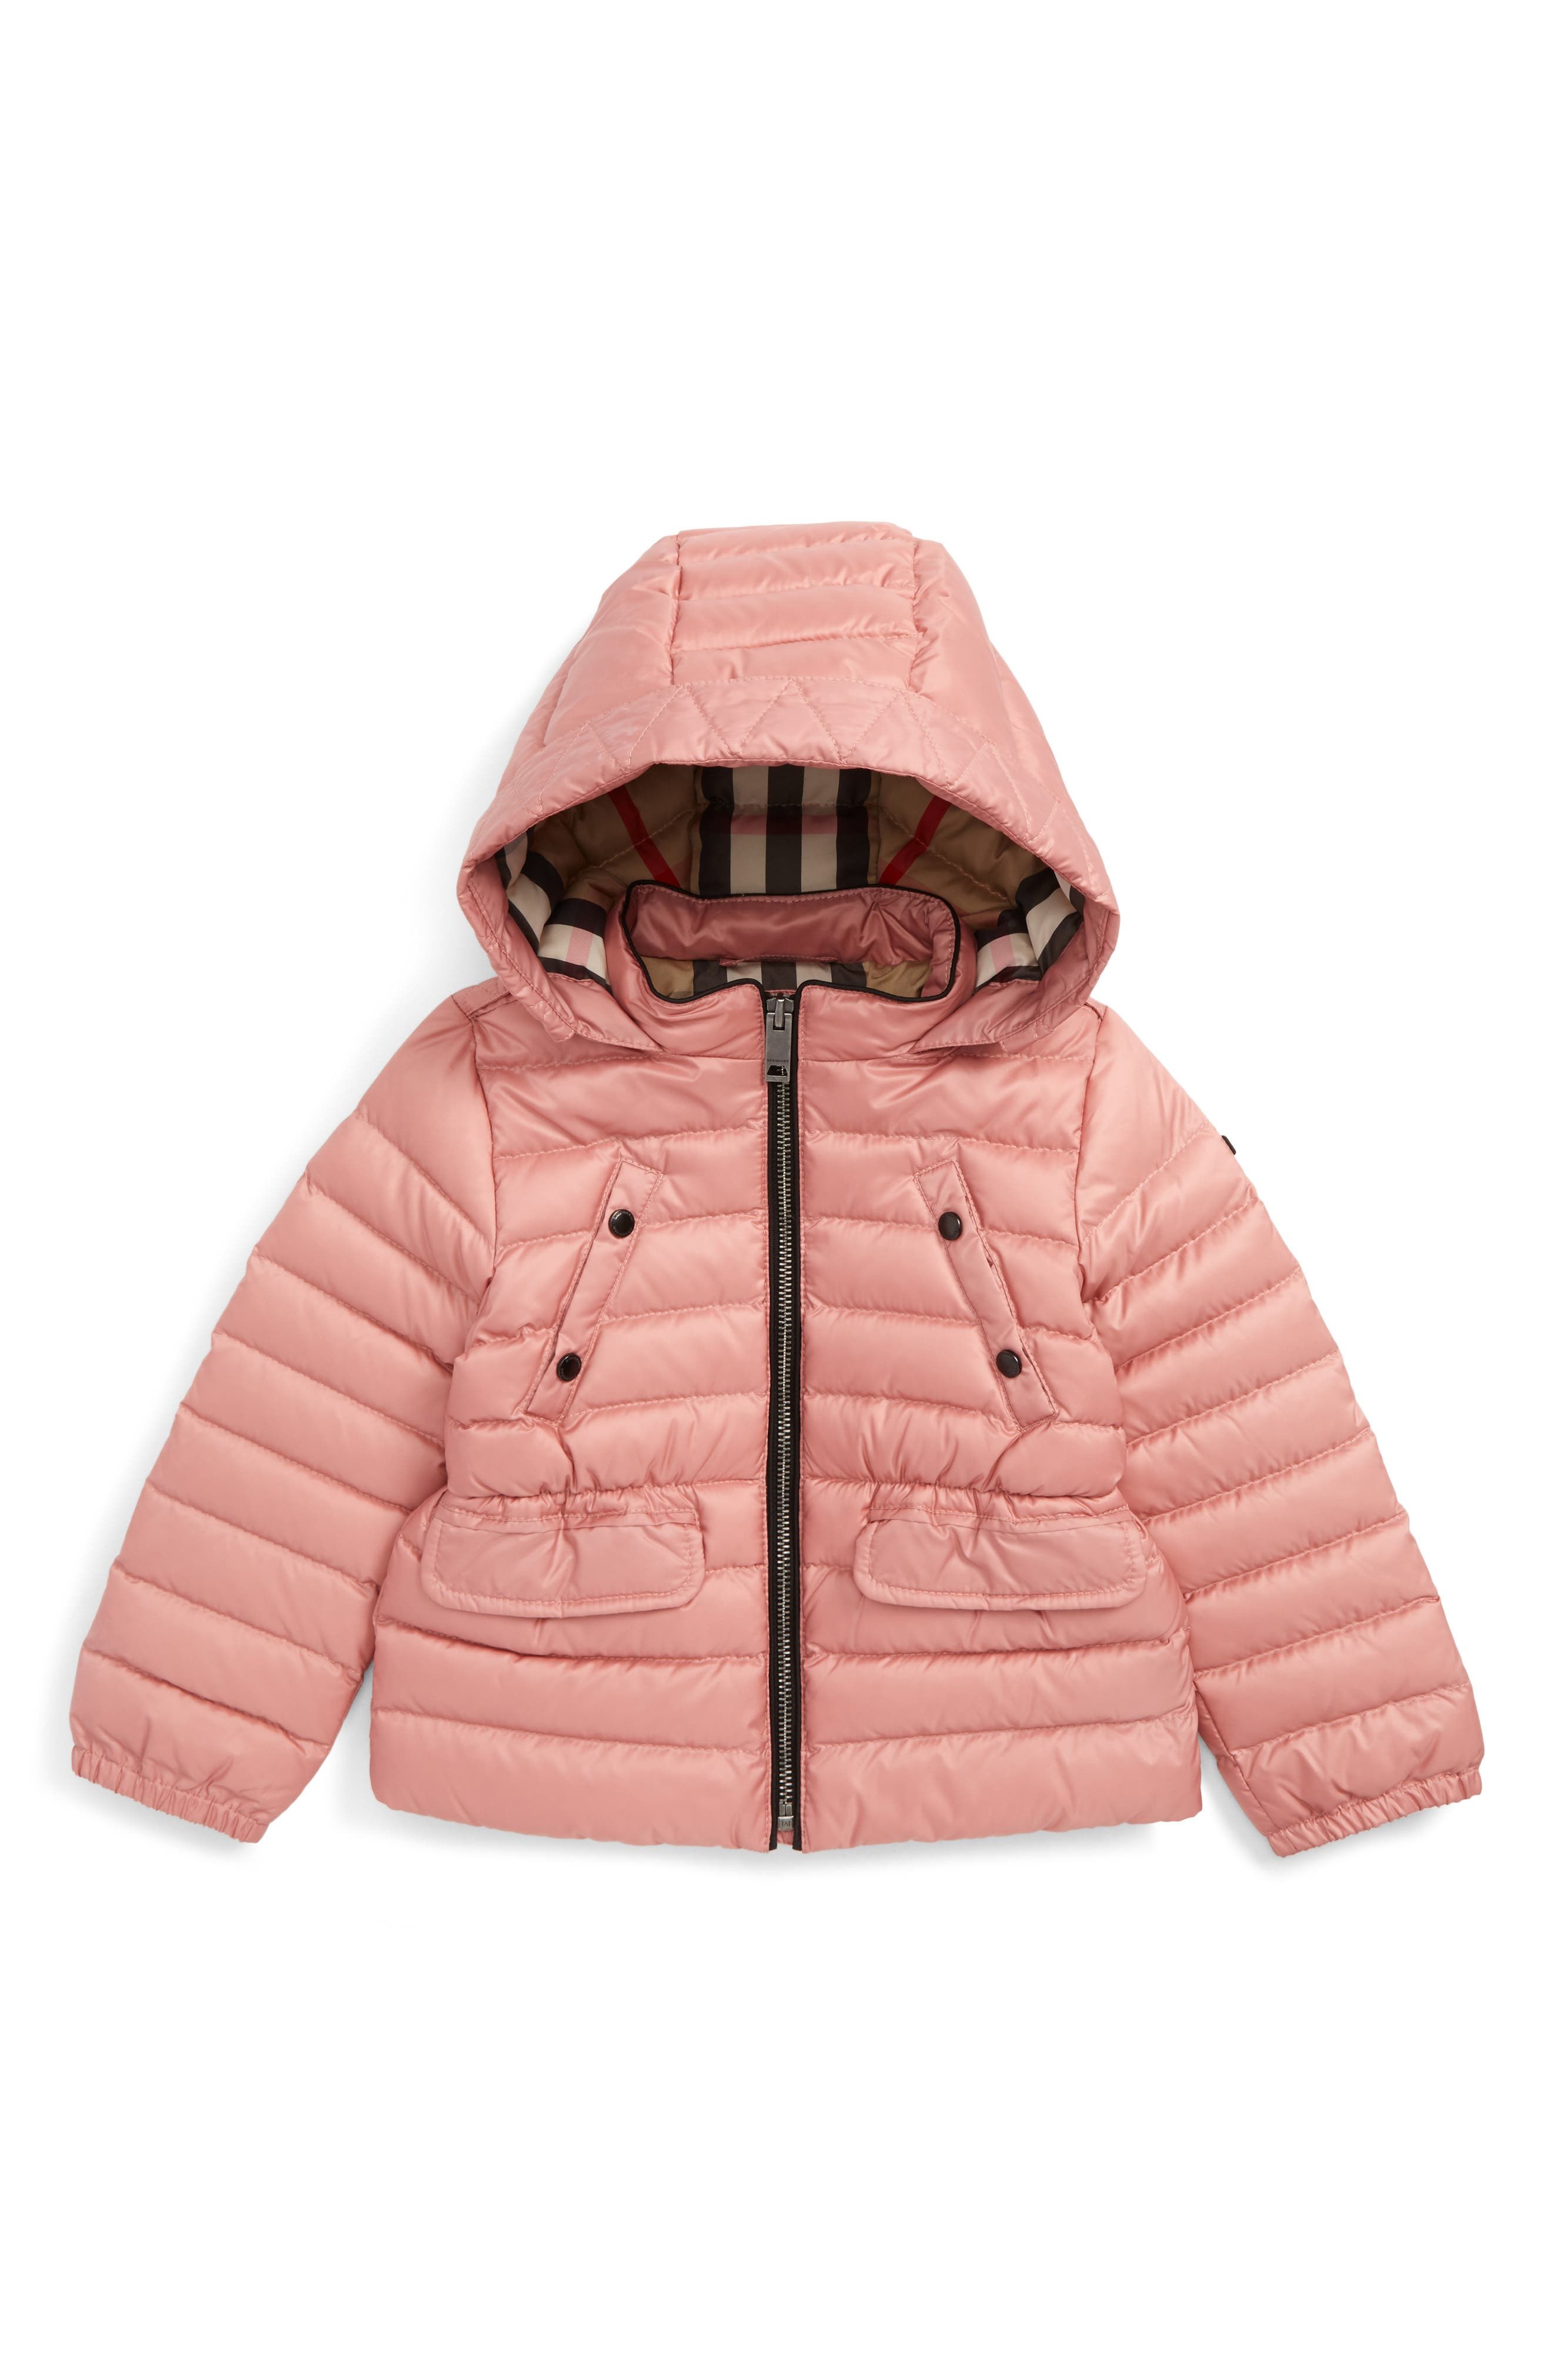 Alternate Image 1 Selected - Burberry Mini Bronwyn Down Jacket (Baby Girls & Toddler Girls)